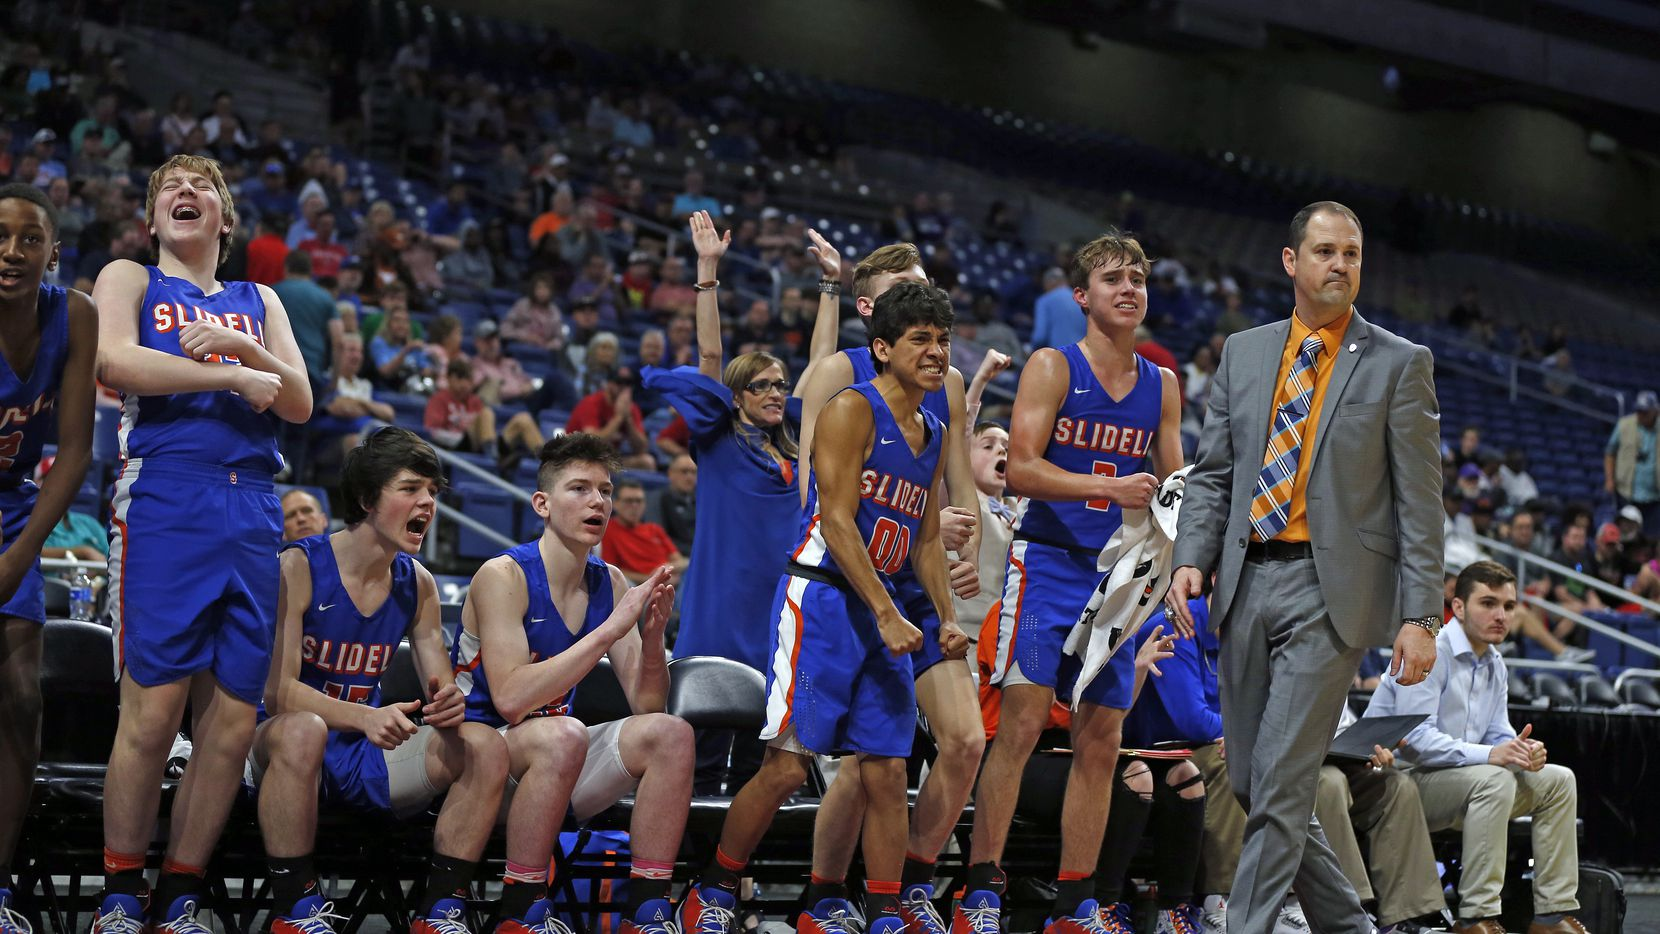 Slidell bench celebrates after a basket late in fourth quarter. Slidell defeated Jayton 45-28 in a Class 1A semifinal game on Thursday, March 12, 2020 at the Alamodome.